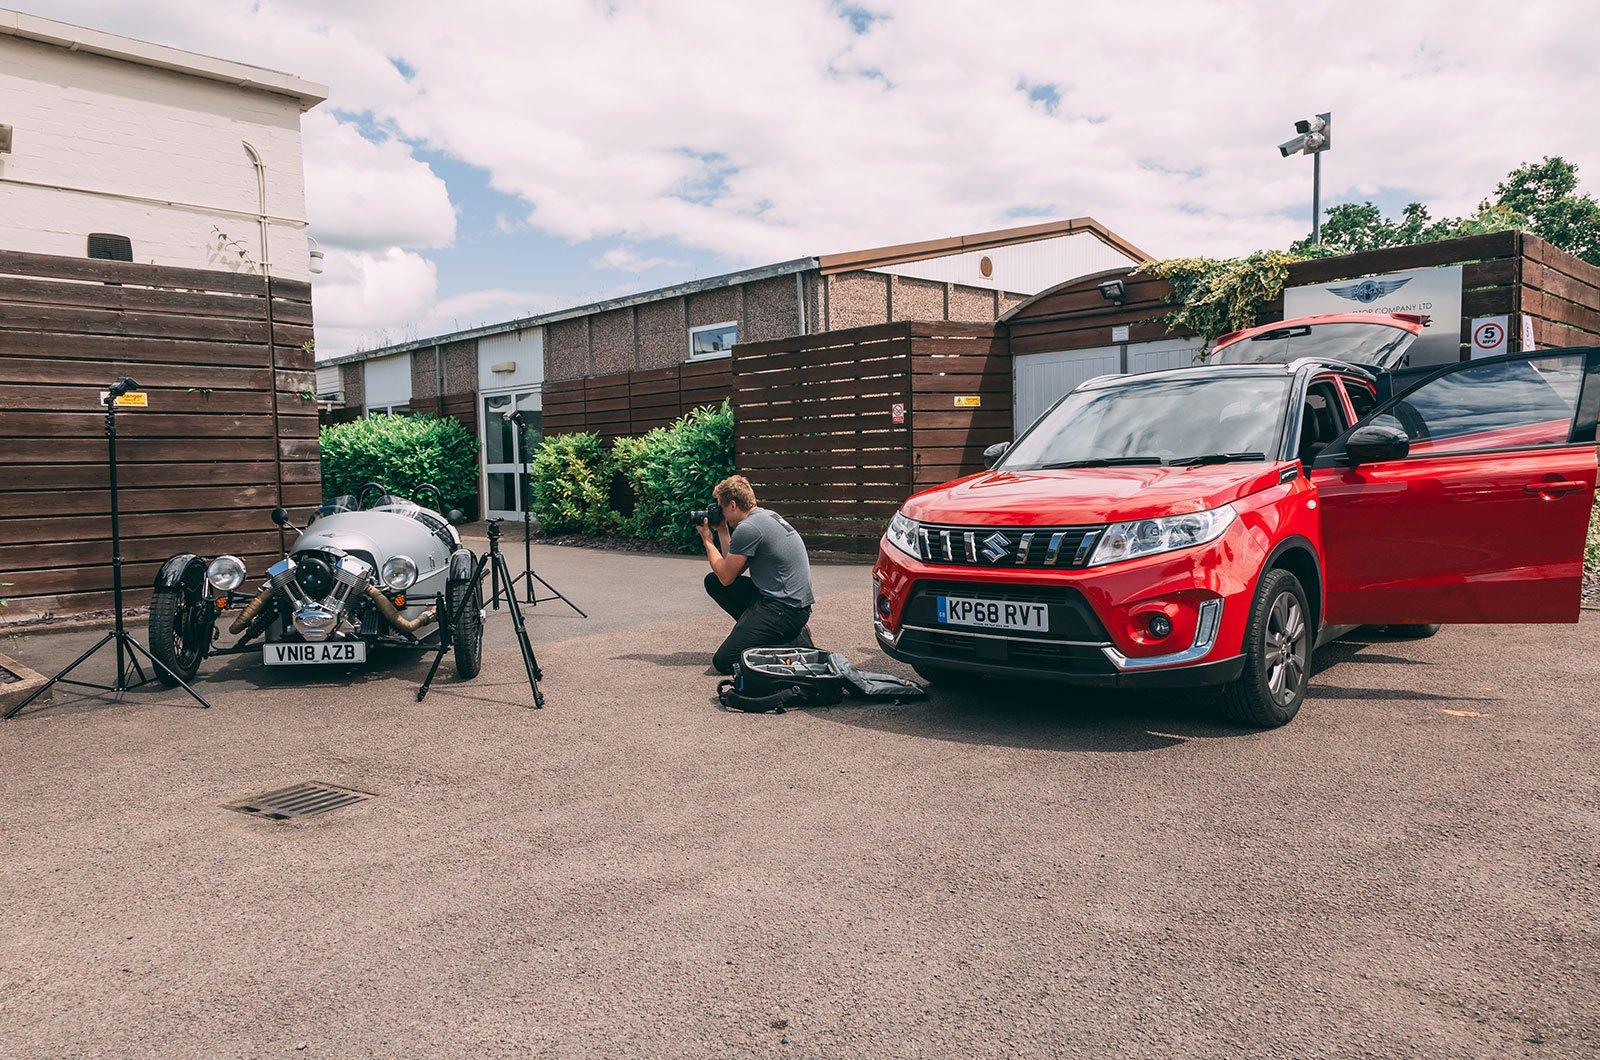 Suzuki Vitara on a photoshoot